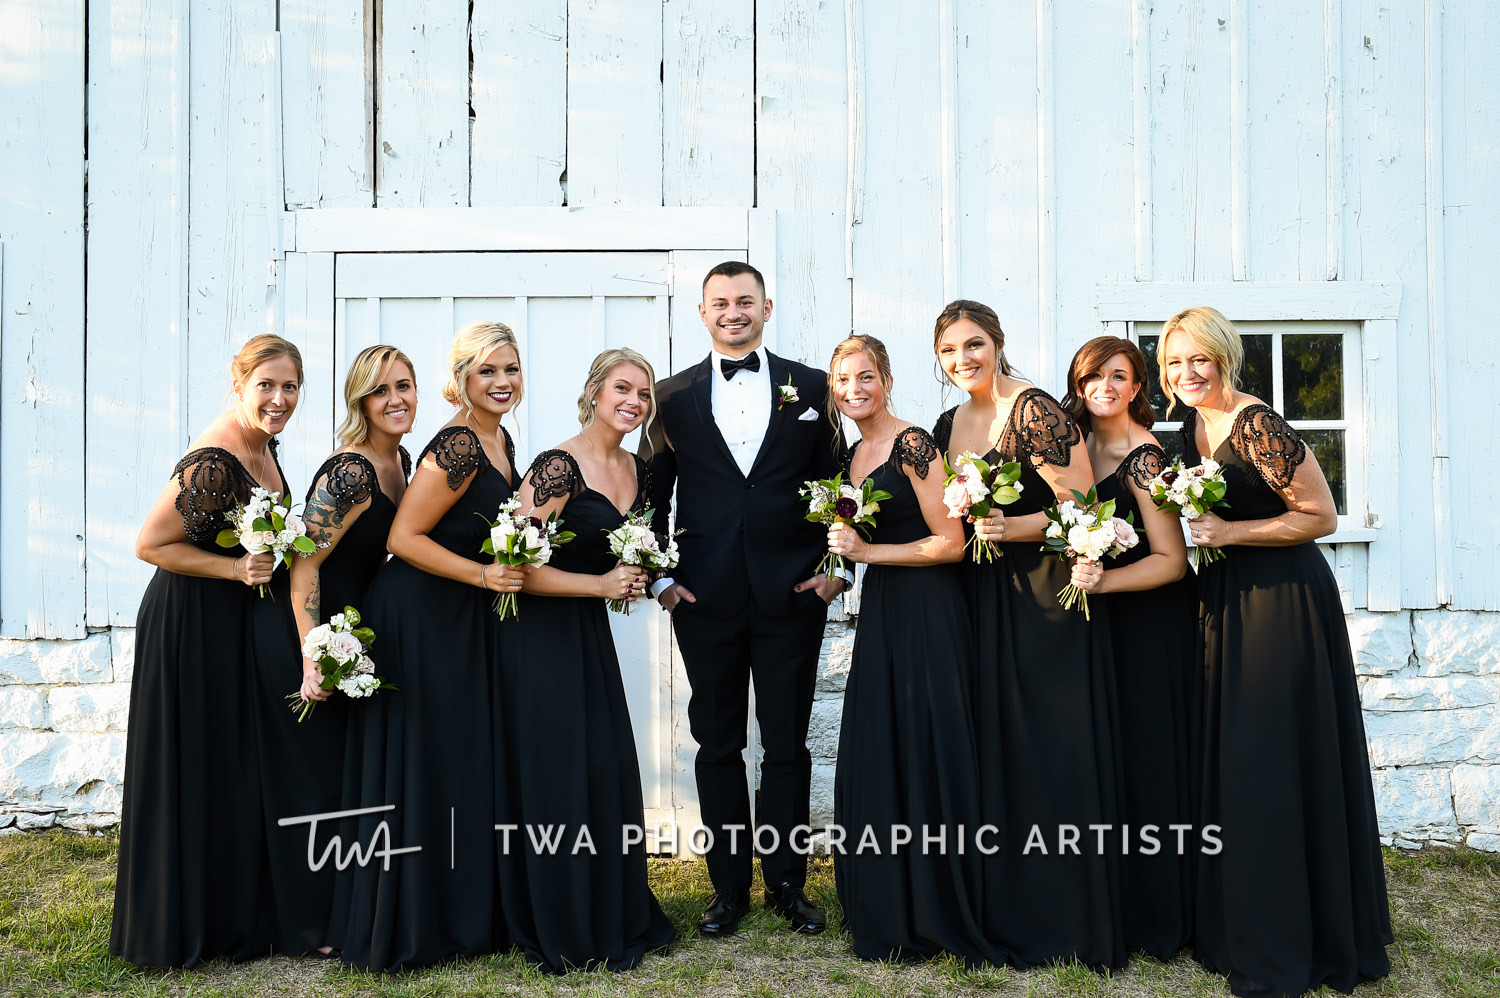 Chicago-Wedding-Photographer-TWA-Photographic-Artists-Private-Residence_Howes_Koczmara_SR_TL-0660